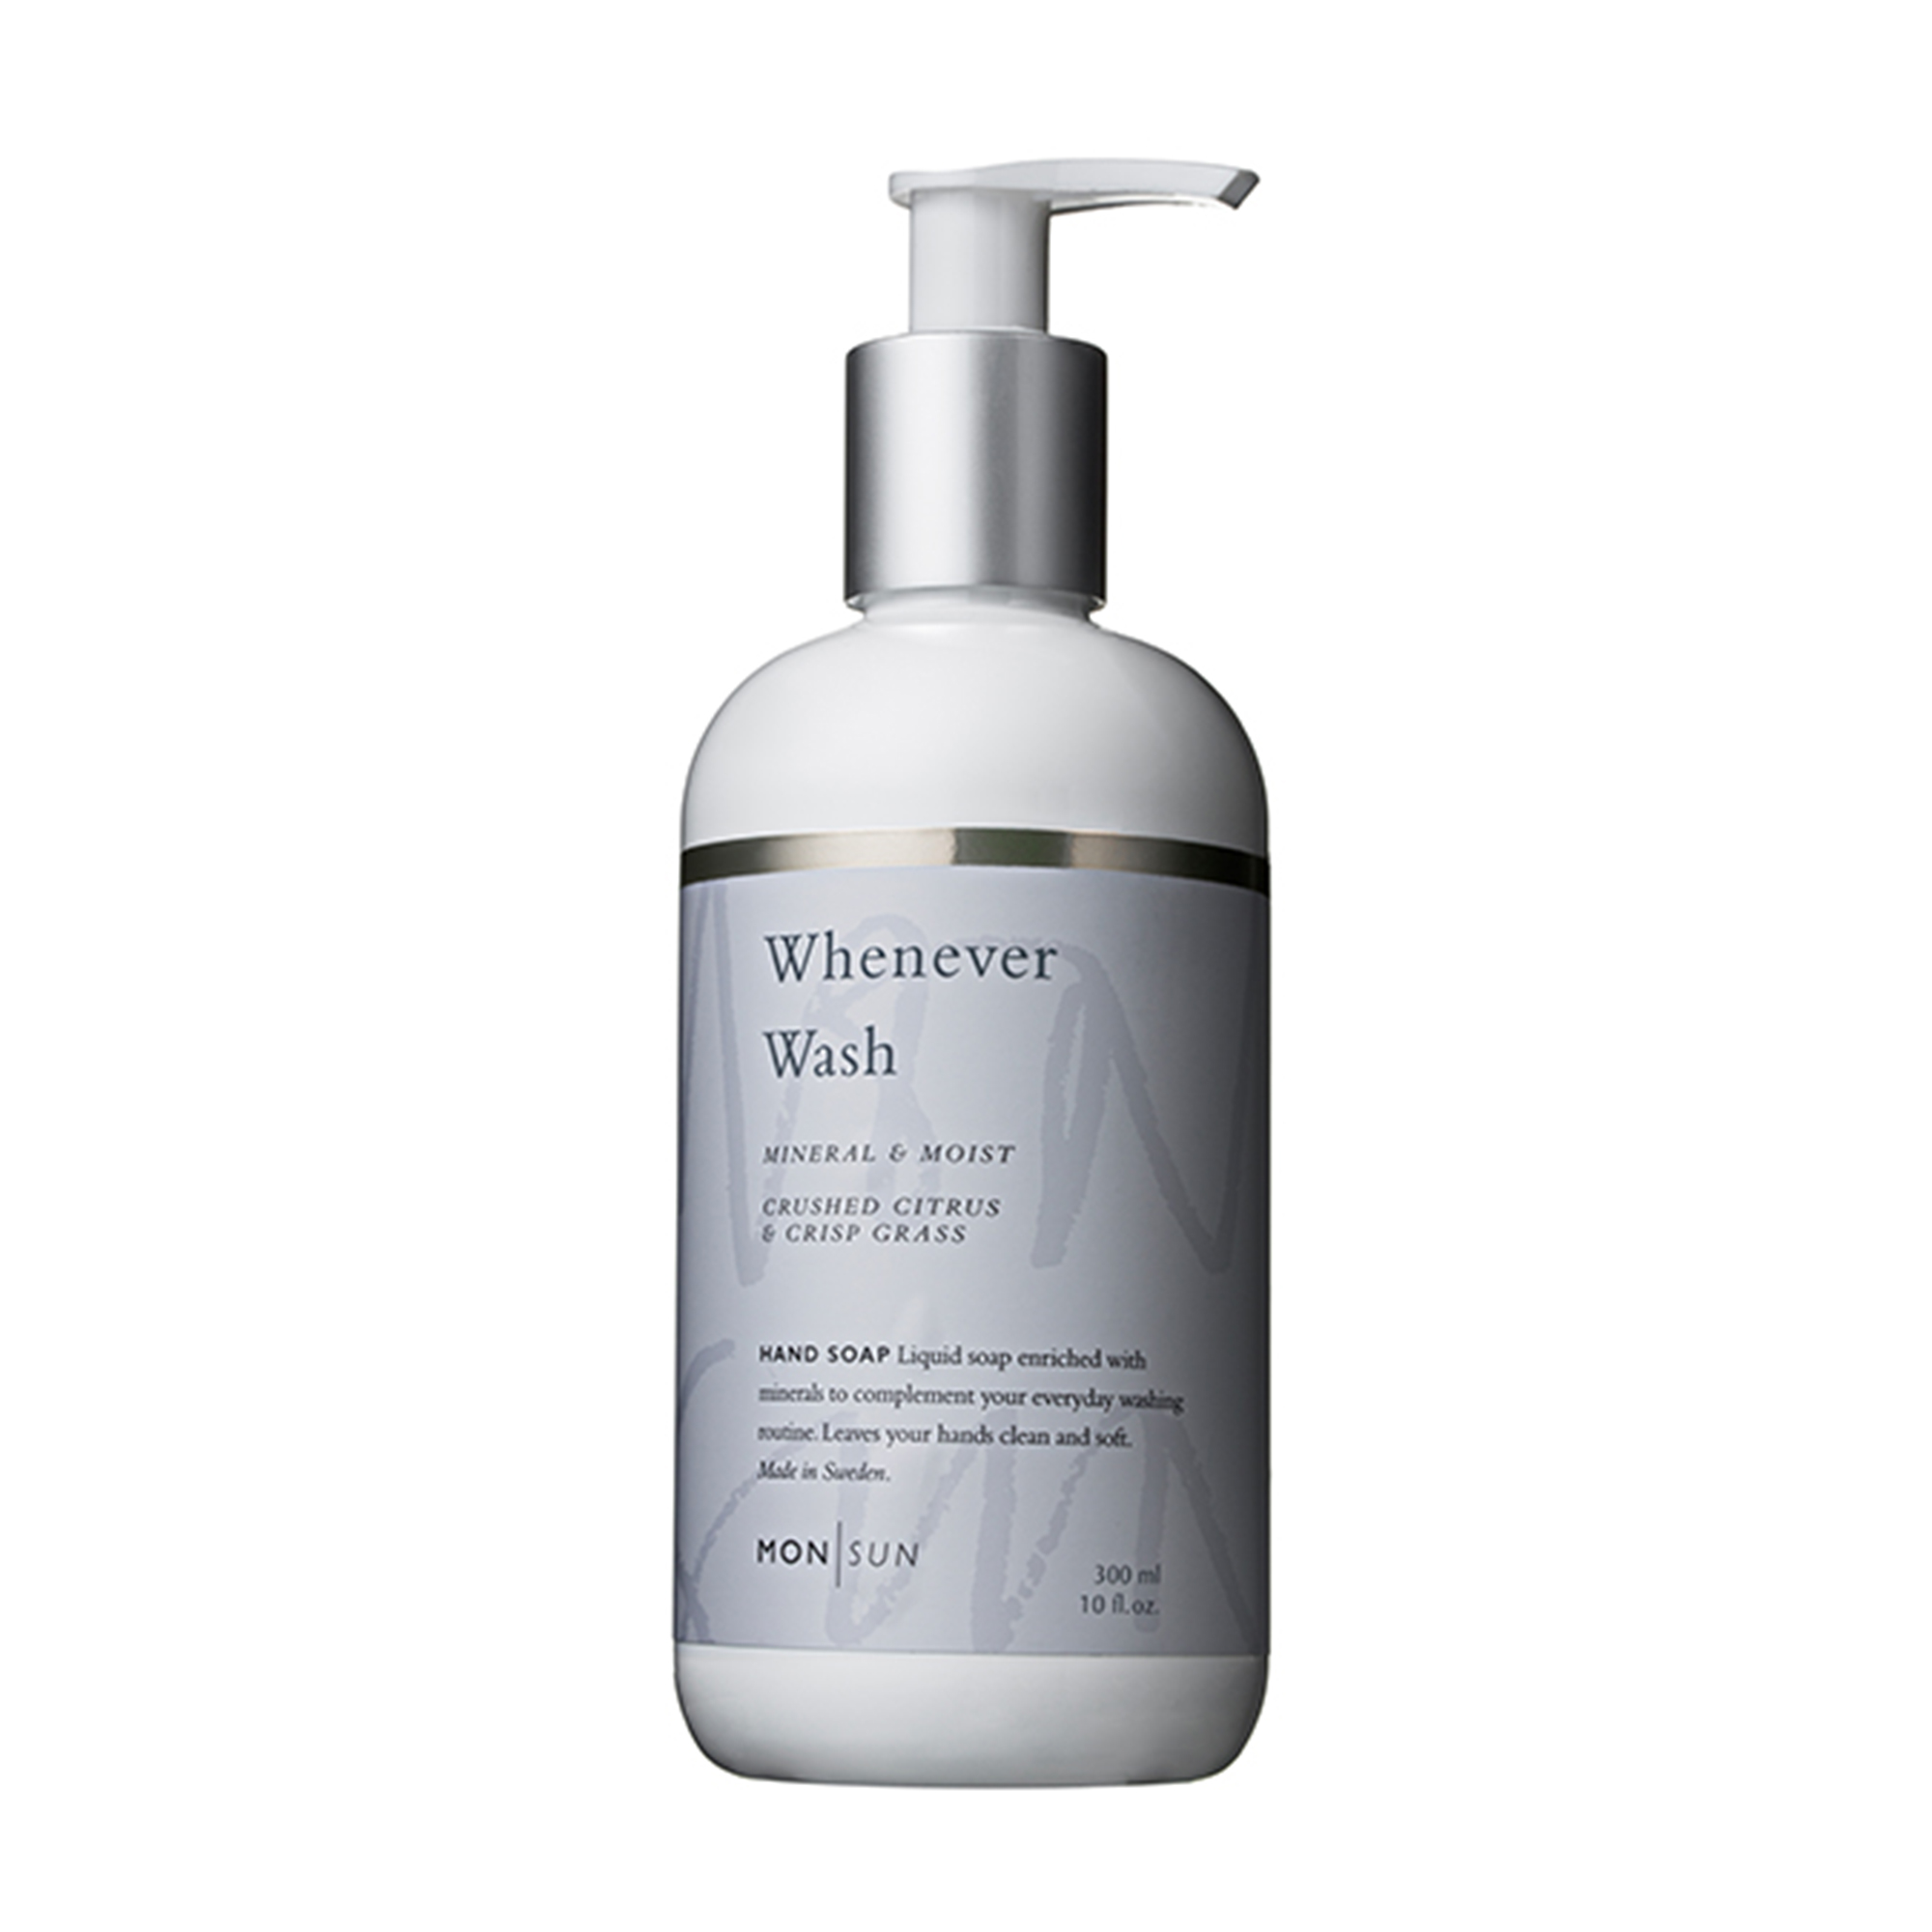 Whenever Wash Mineral & Moist 300 ml